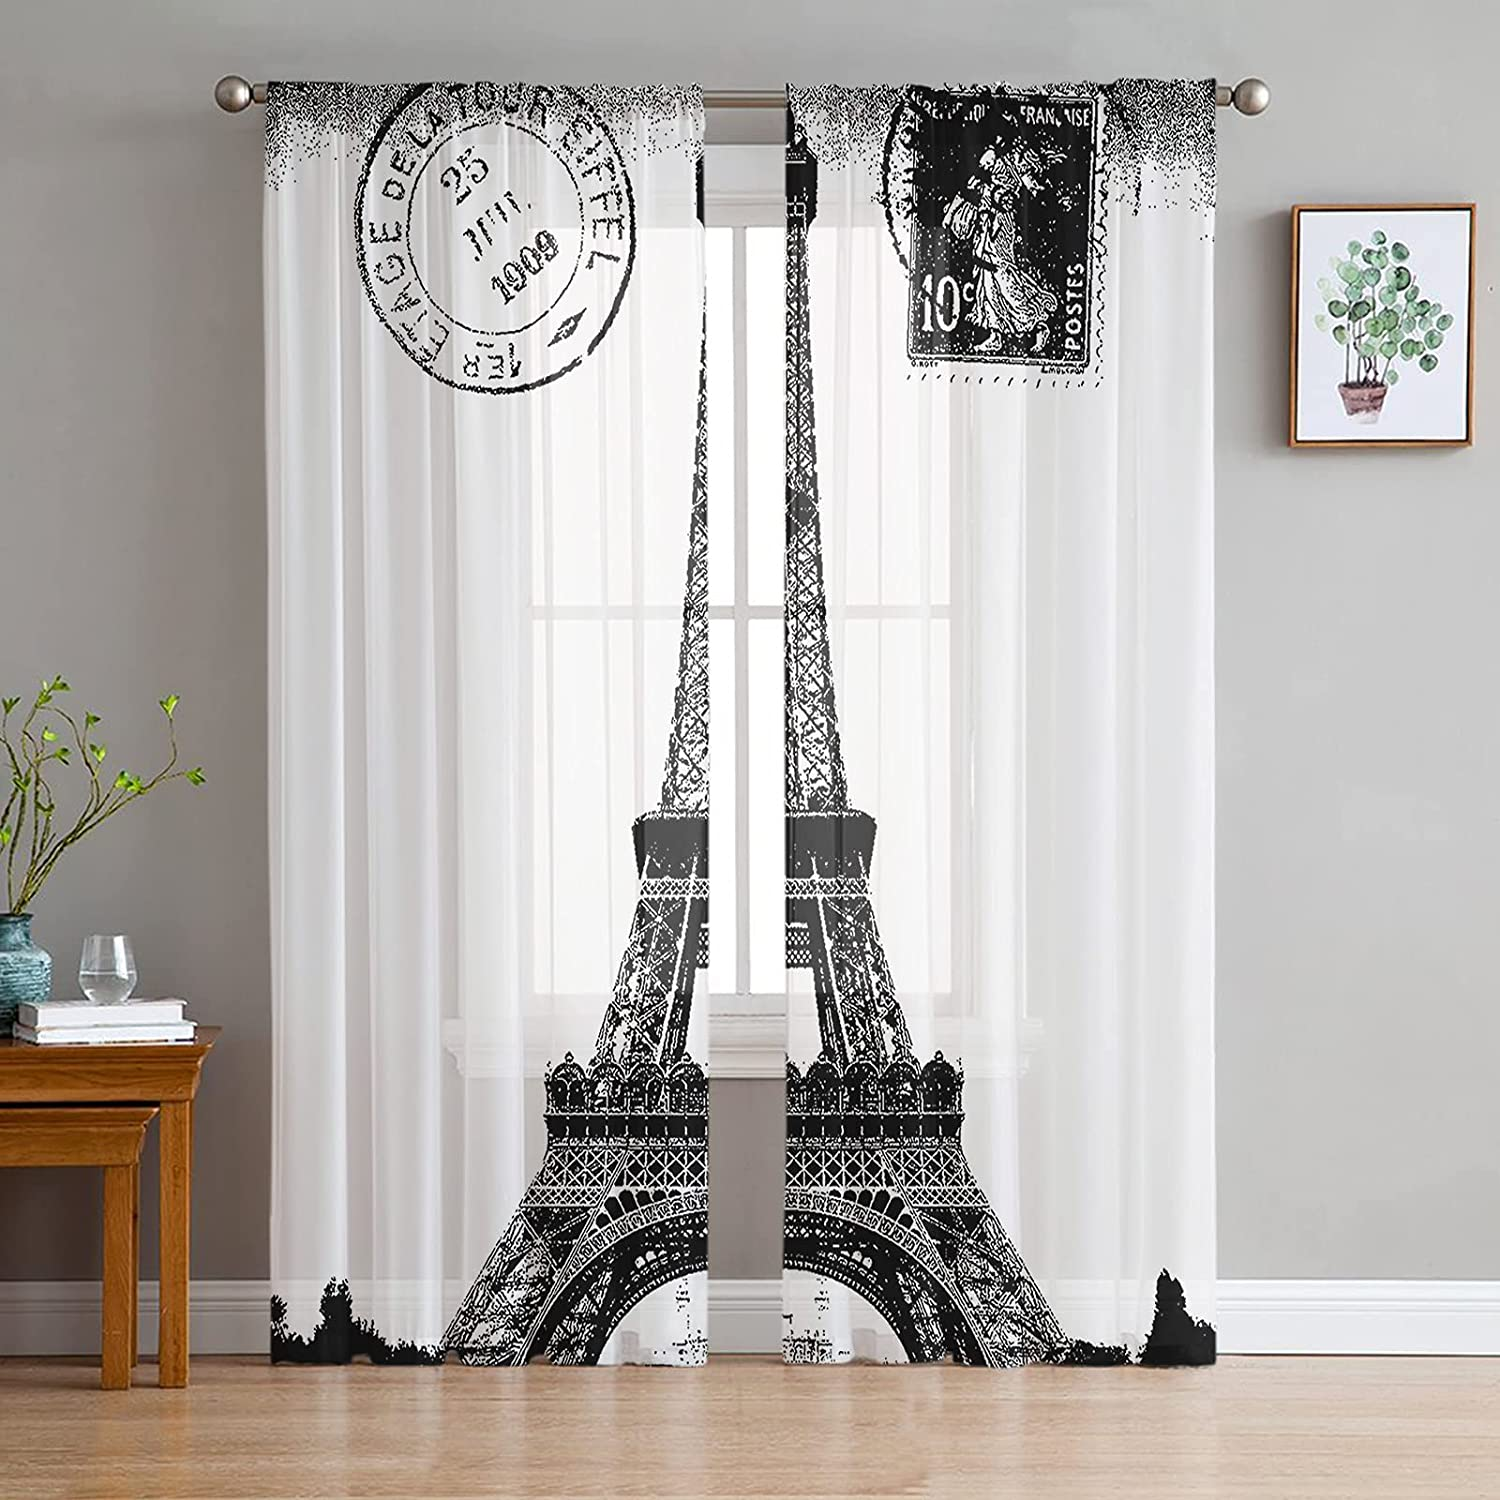 2 Panels Sheer Curtains Light Drapes Tower Eiffel Save money Filtering Vint Chicago Mall